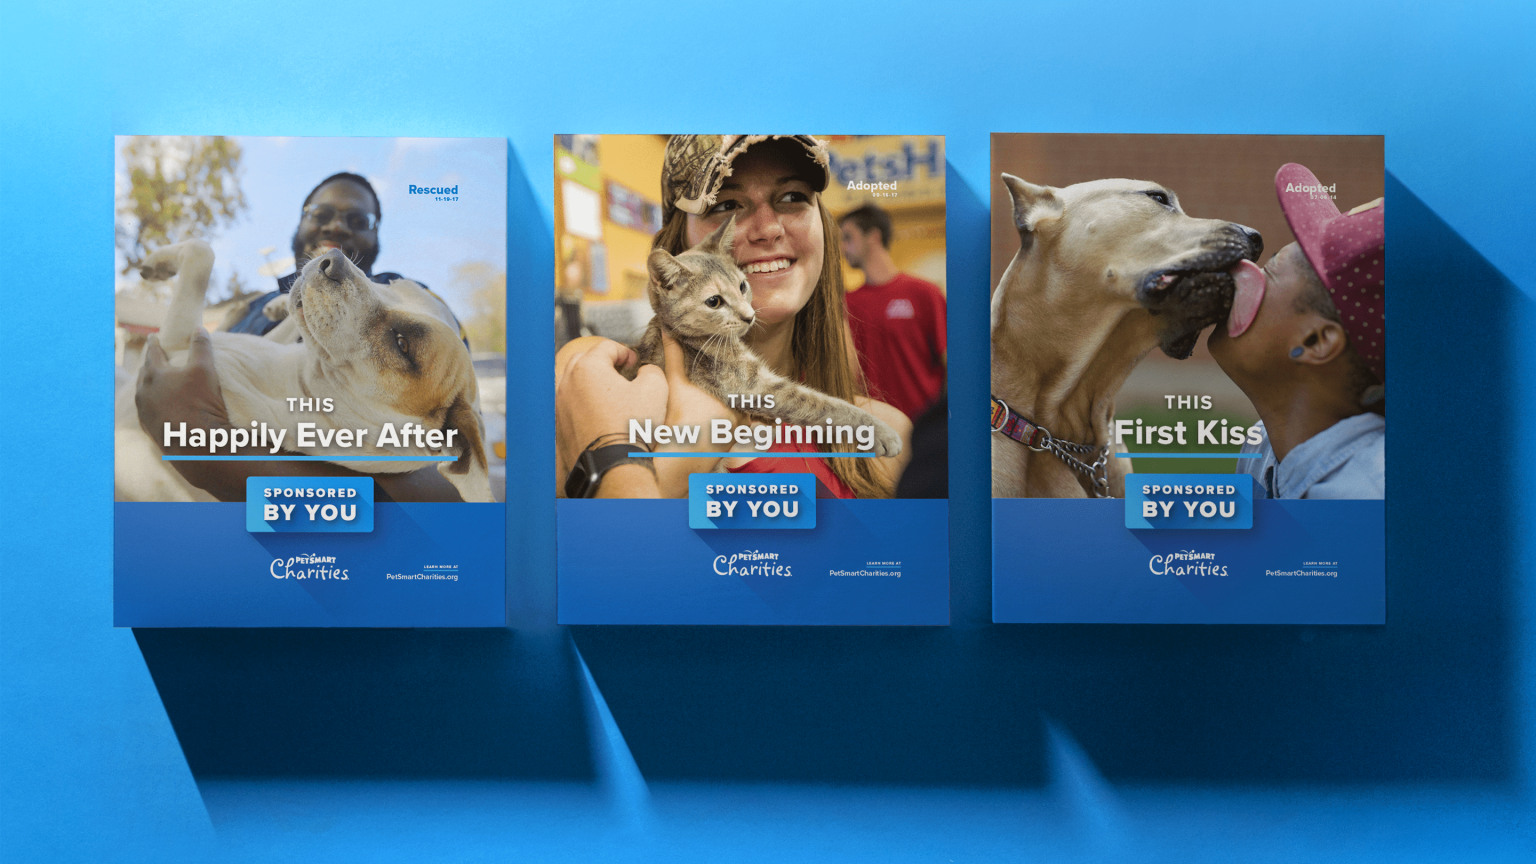 PetSmart Charities: Sponsored by You